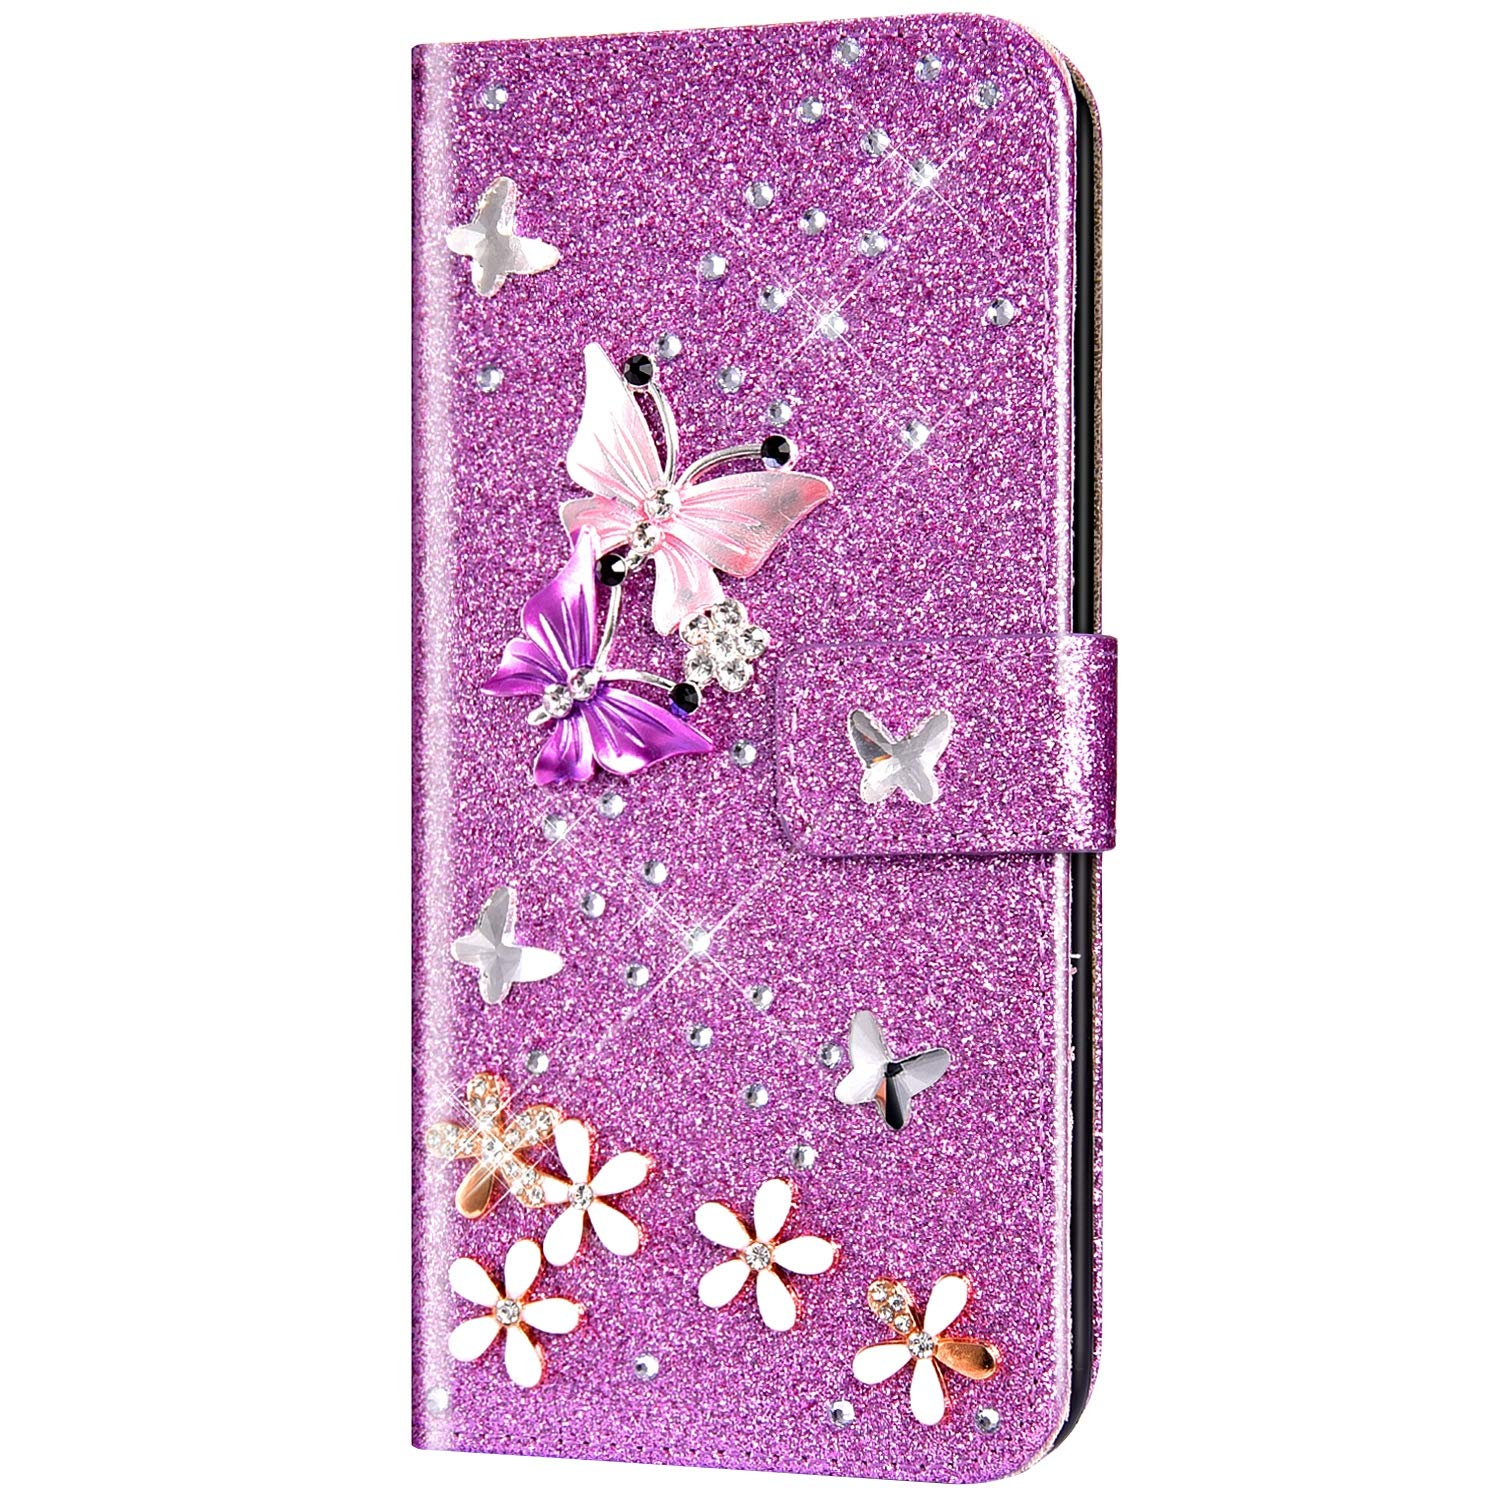 Case for Huawei P30 Flip Case Premium PU Leather Wallet Case 3D Handmade Glitter Bling Shiny Diamond Butterfly with Card Slots Kickstand for Huawei P30,Purple by ikasus